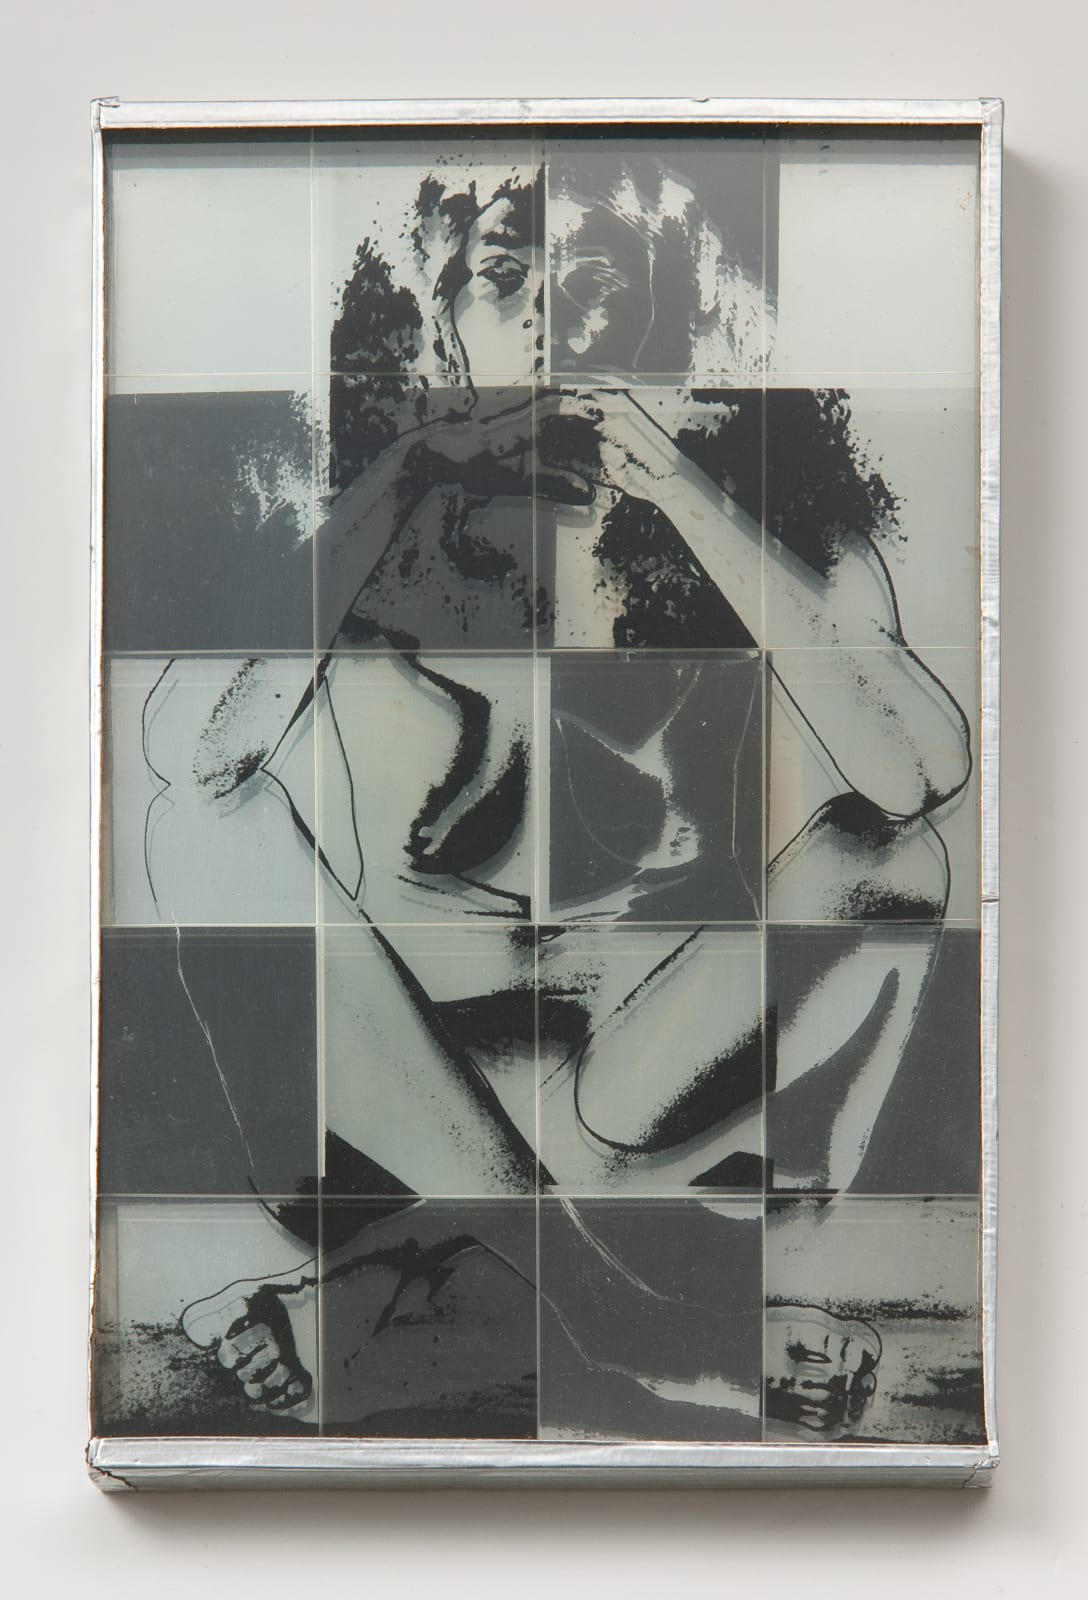 Jack Dale, Extension of Cubed Woman #3